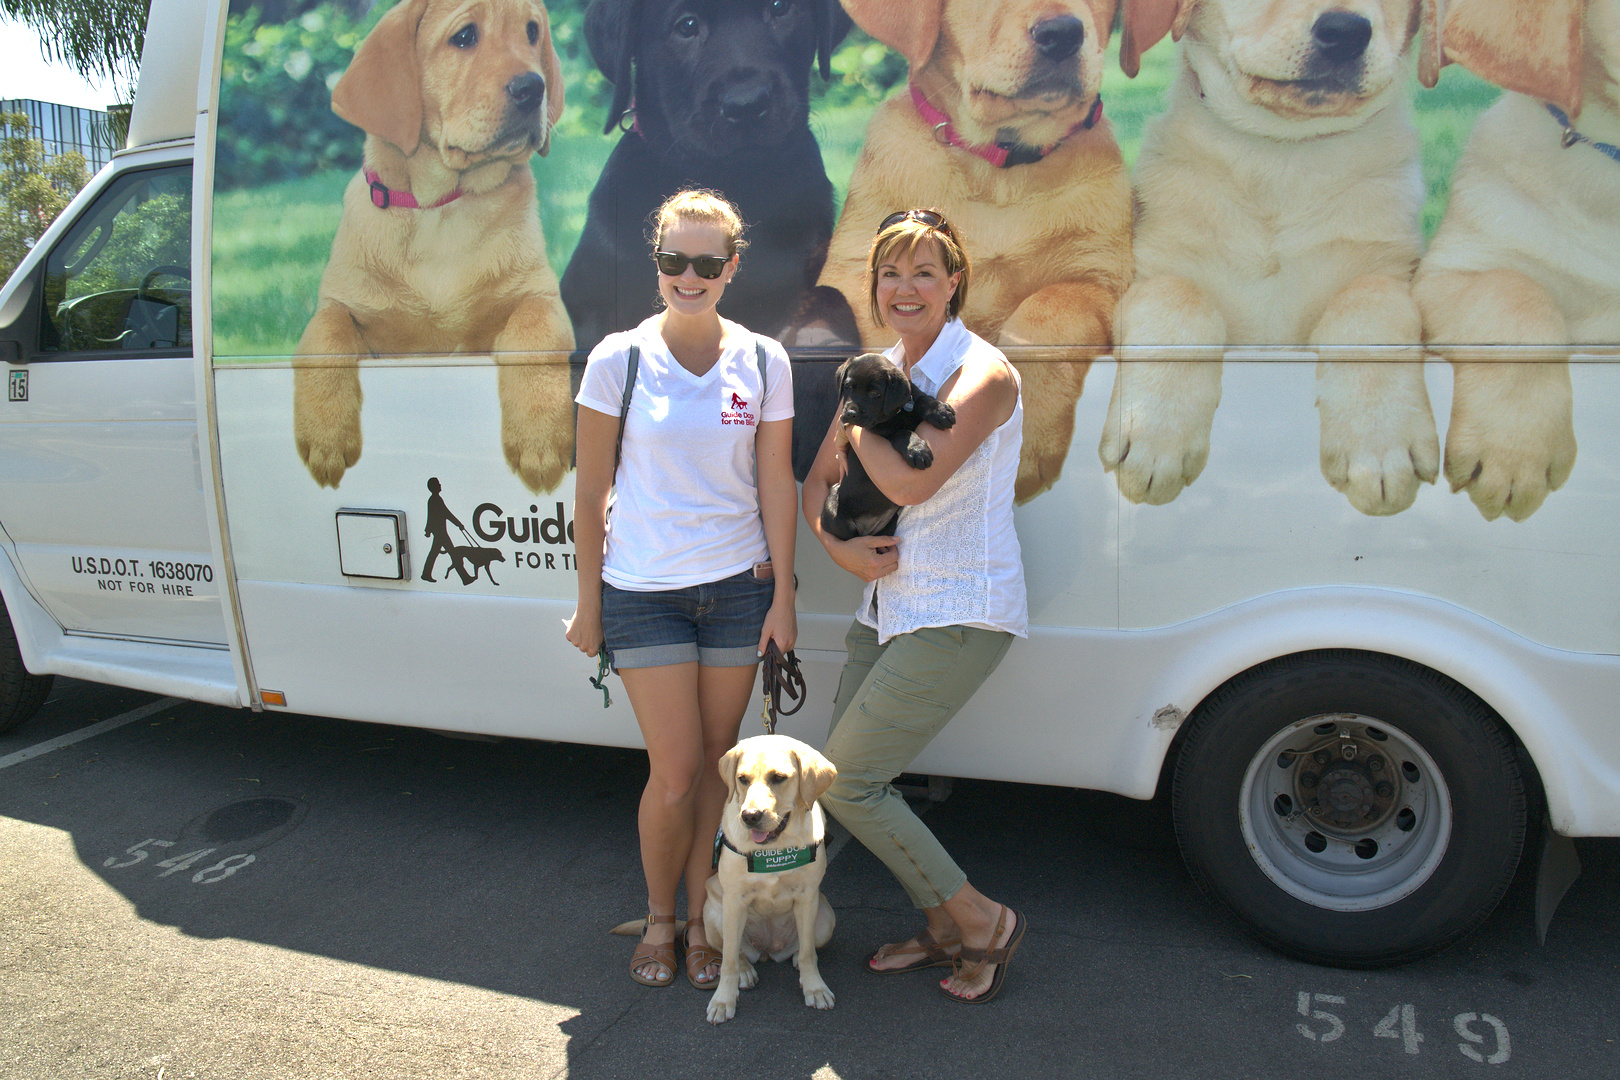 Kelsea with Amari and Denise with Jess at the Puppy truck